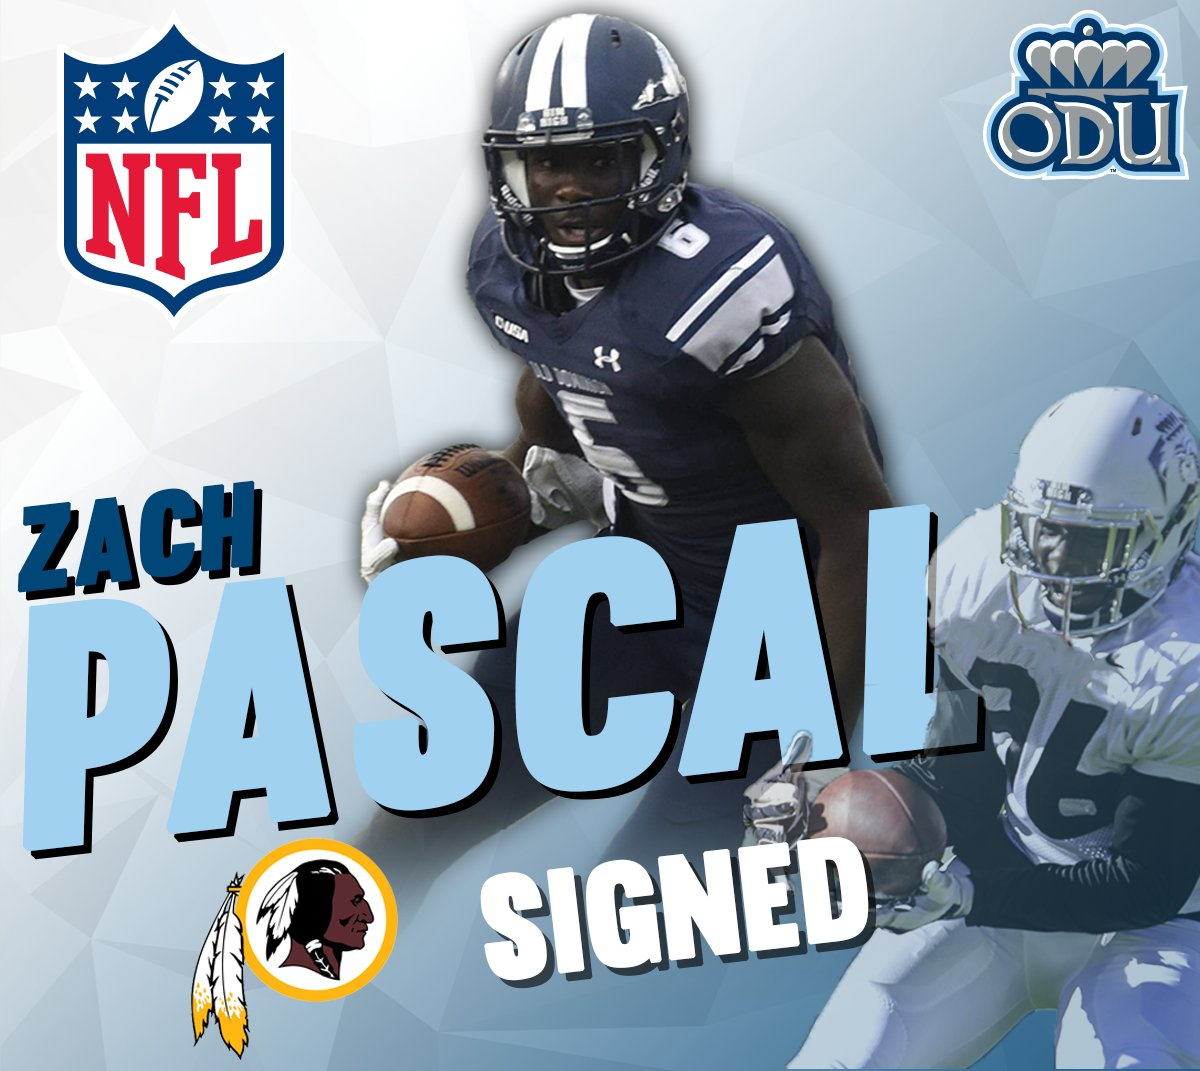 Zach Pascal has been signed by the @Redskins #ODUFB https://t.co/lucfj3lgan